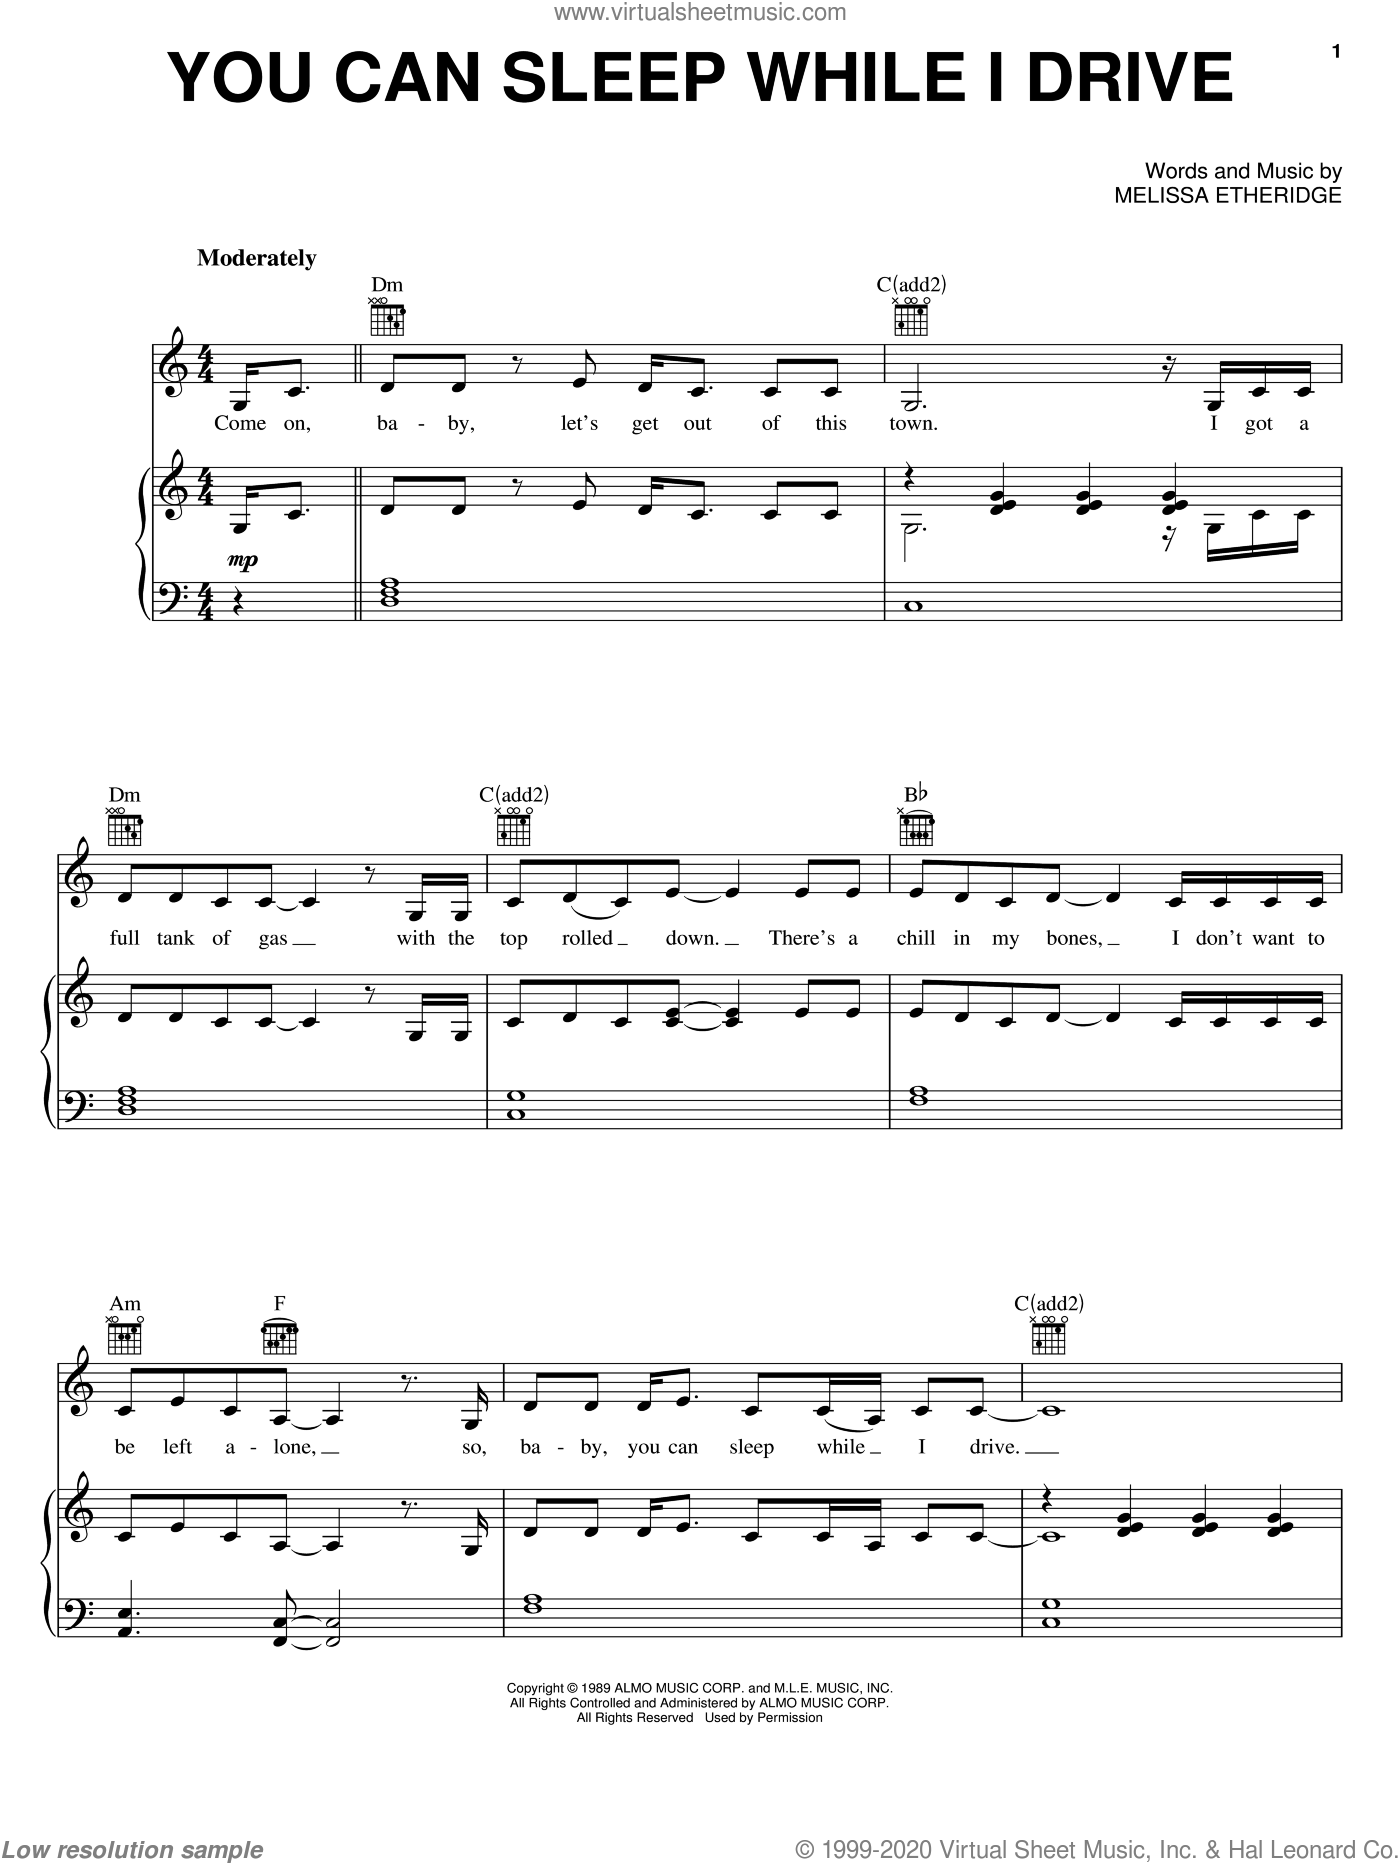 You Can Sleep While I Drive sheet music for voice, piano or guitar by Melissa Etheridge, intermediate skill level